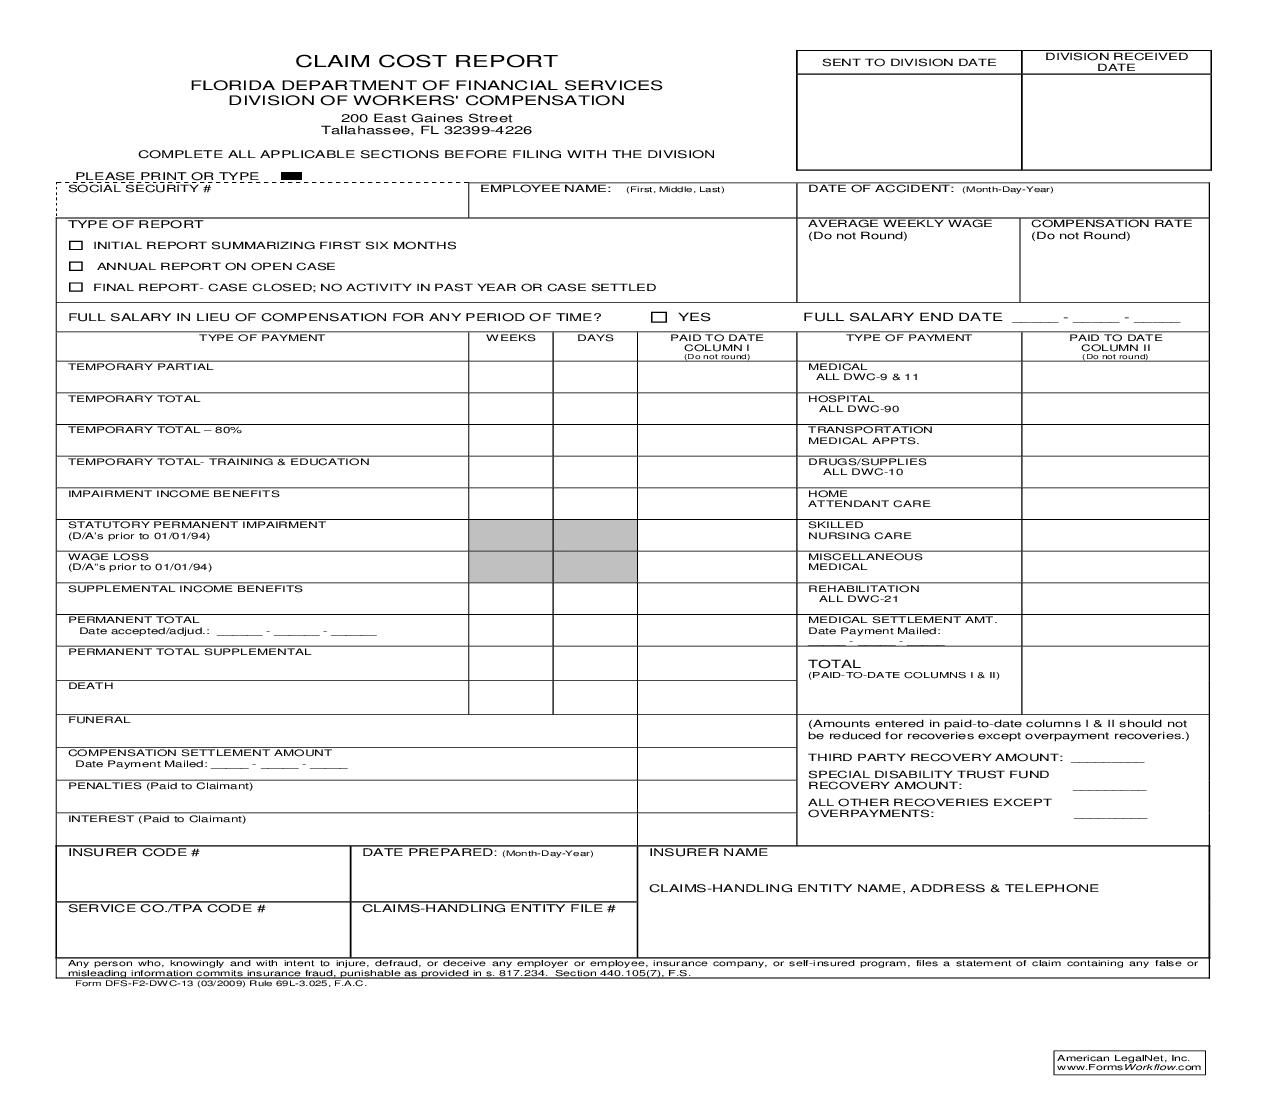 Claim cost report florida financial services report